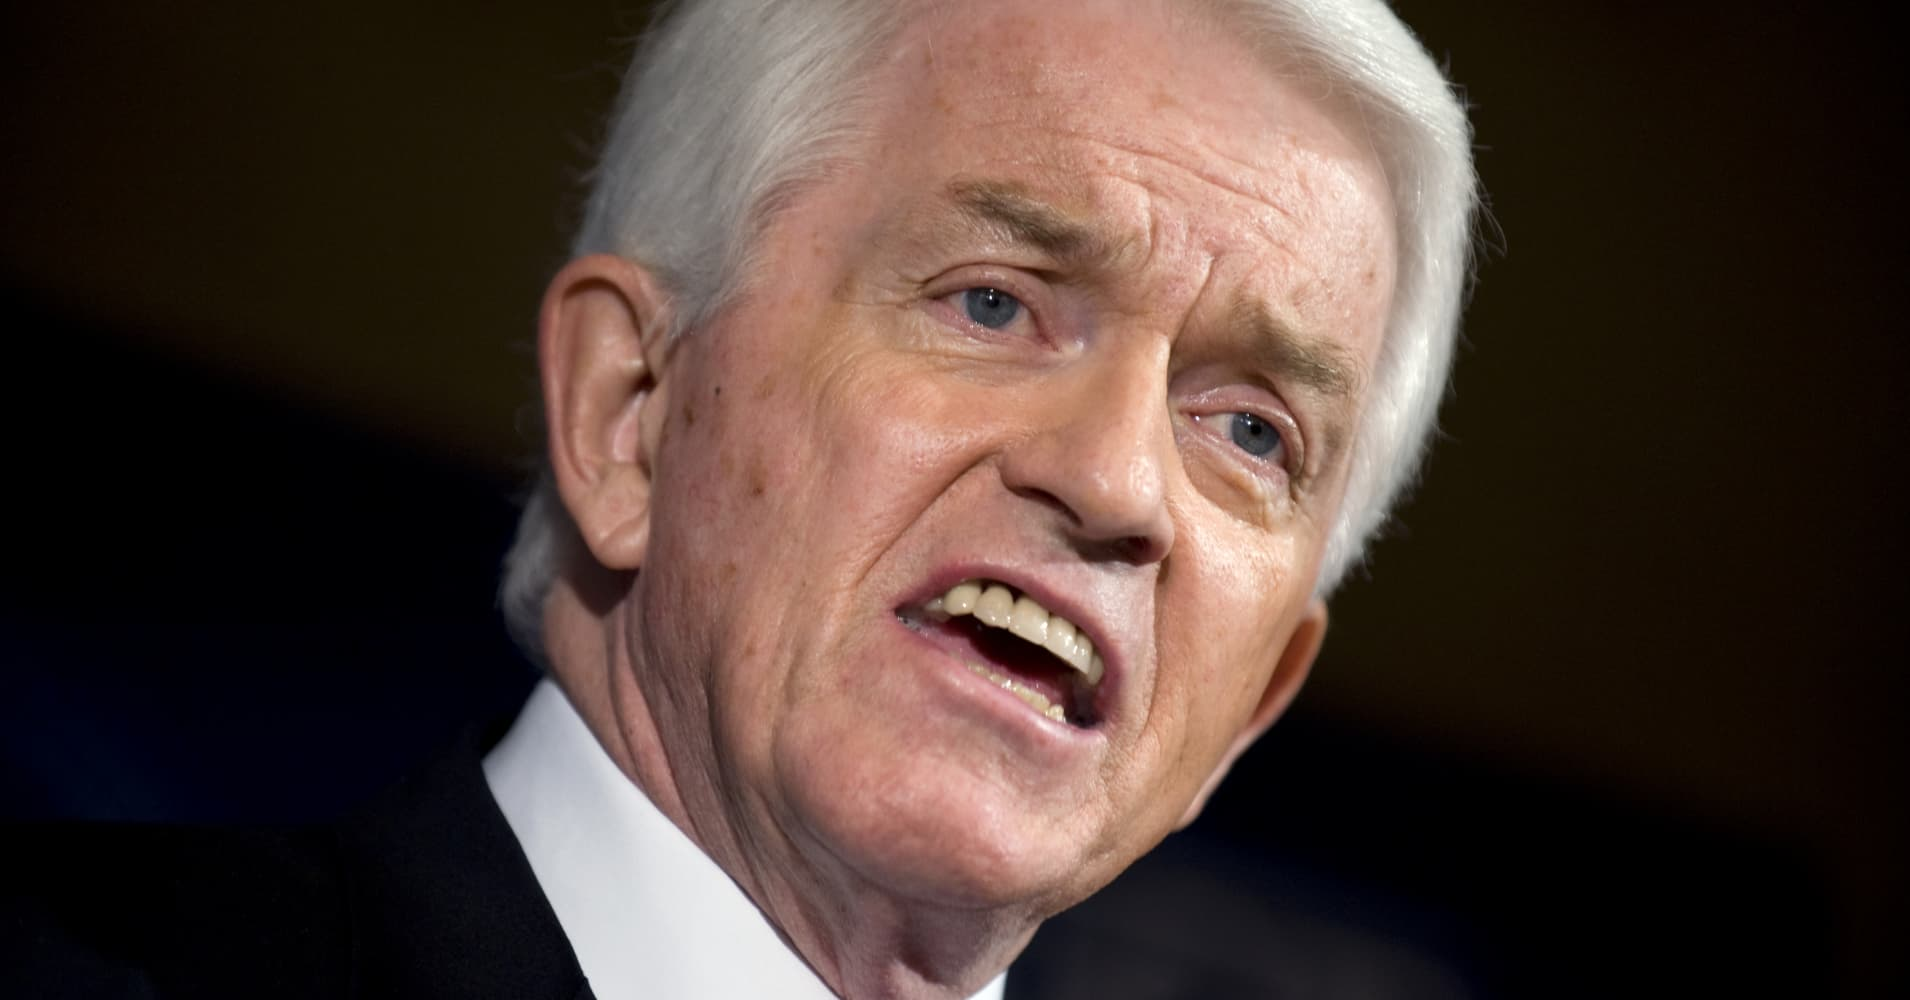 Chamber of Commerce CEO Tom Donohue says pulling out of NAFTA would mean 'absolute destruction' for the economy